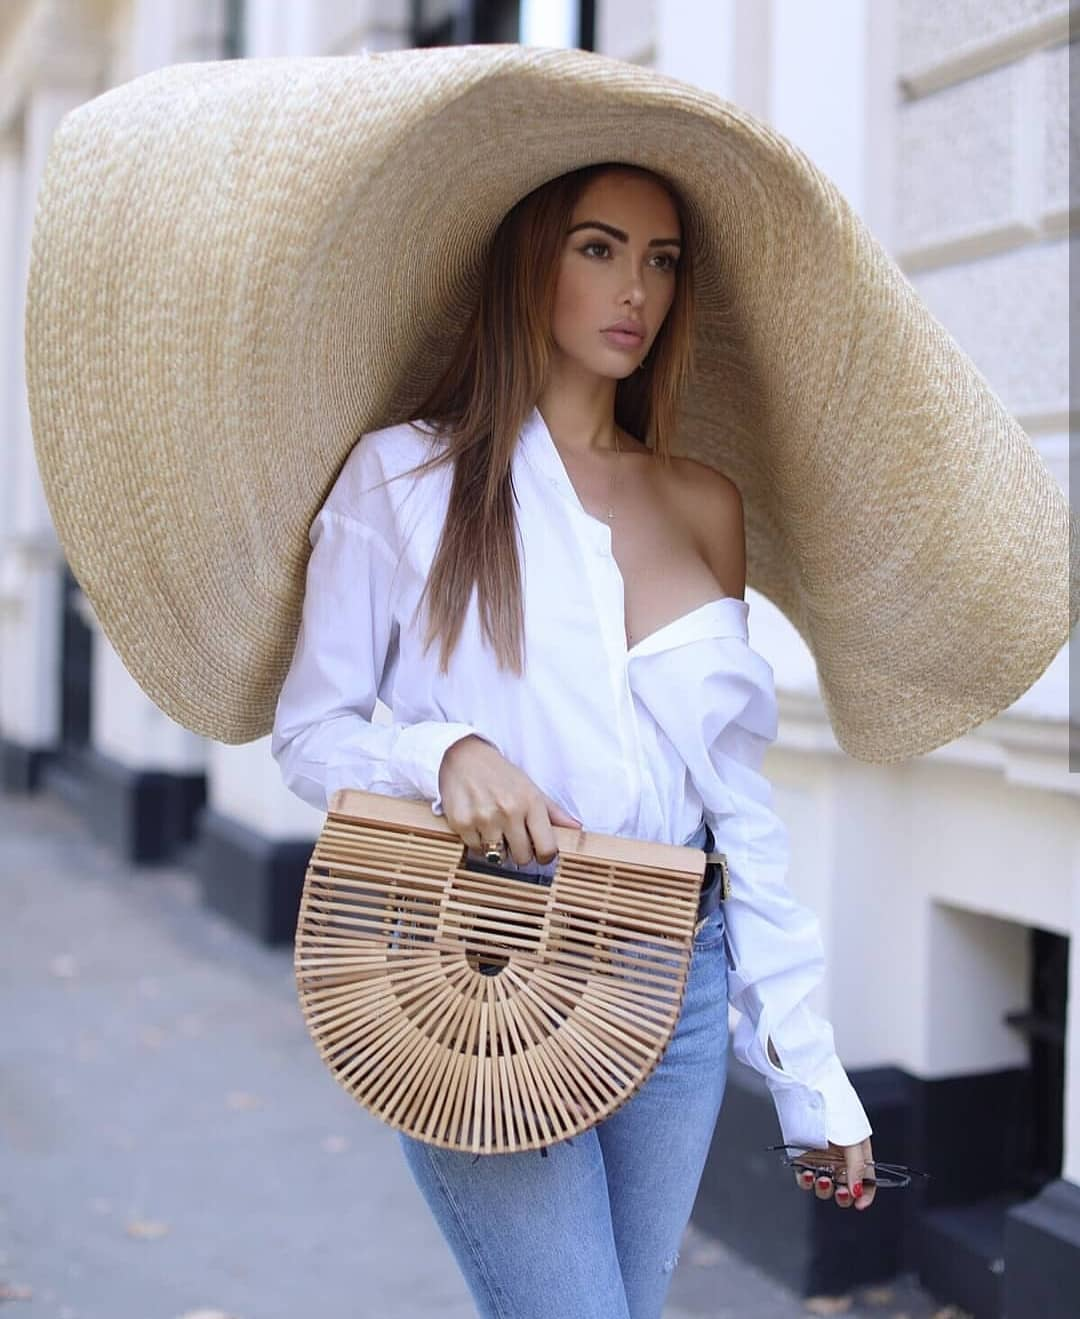 b3bb5f3c2ee Extra Large Straw Sunhat For Summer 2019 ⋆ FashionTrendWalk.com